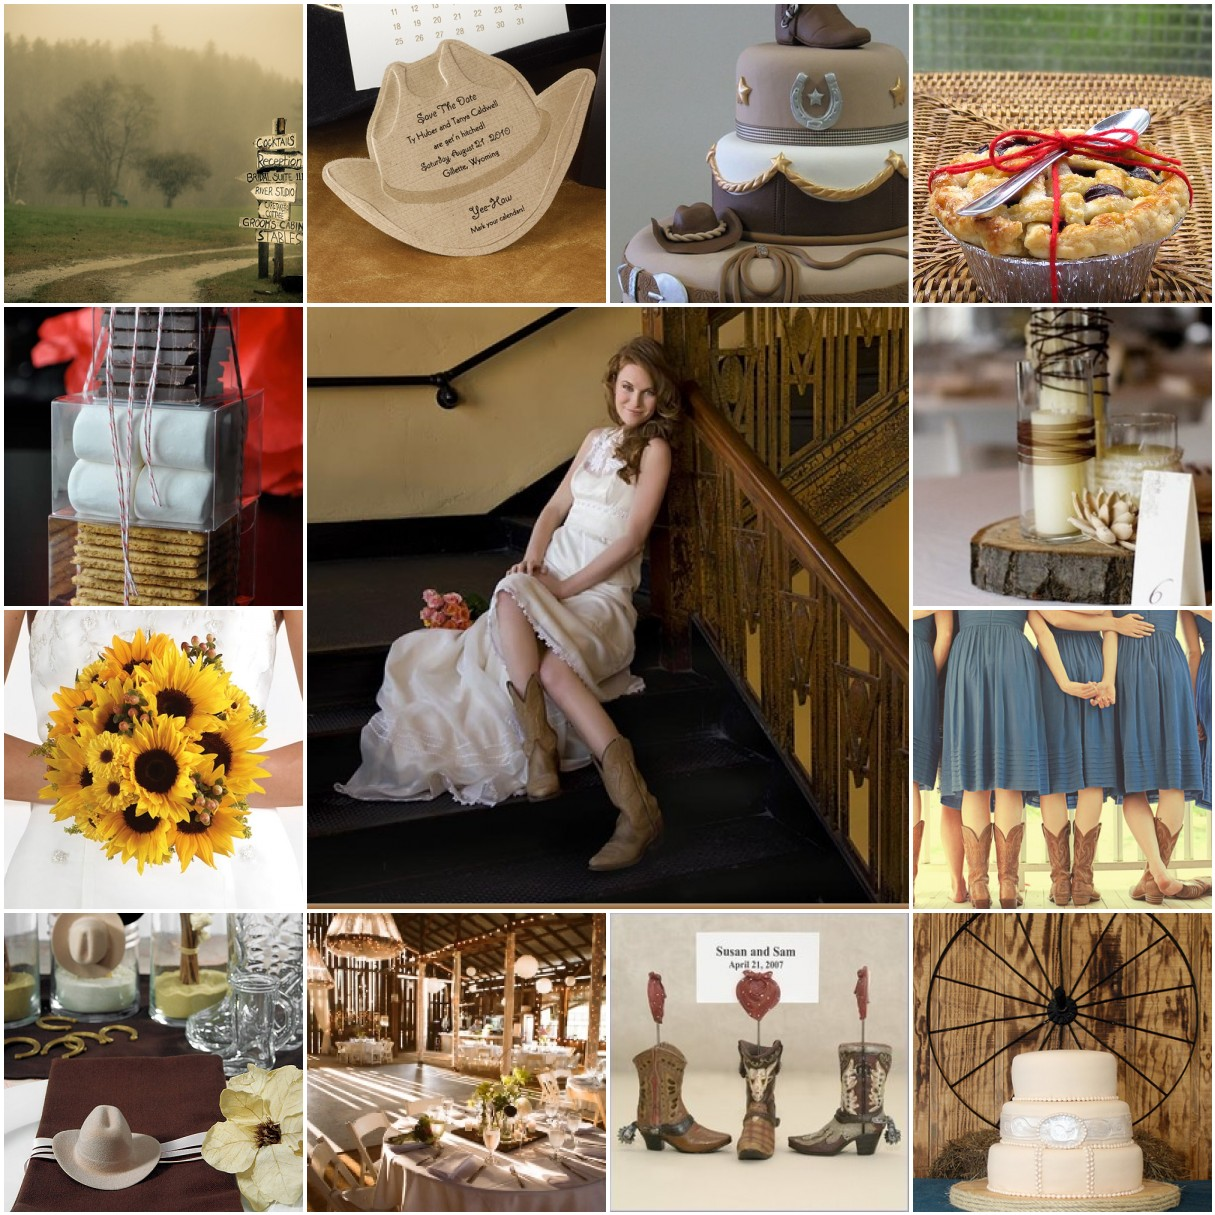 The Button Bride: April 2012